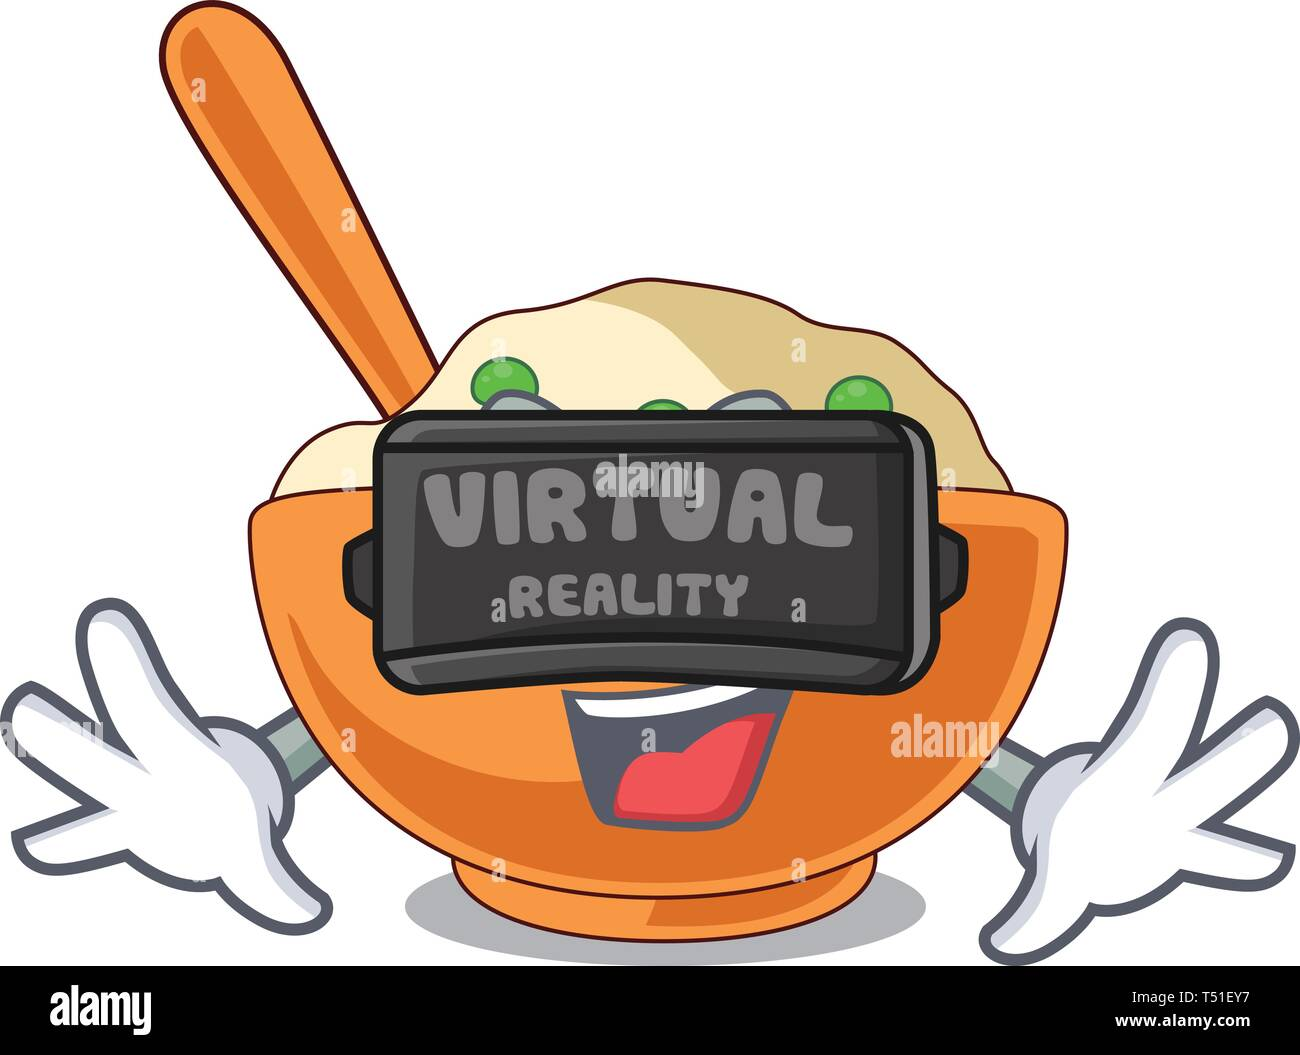 Virtual reality mashed potato in the shape mascot - Stock Vector